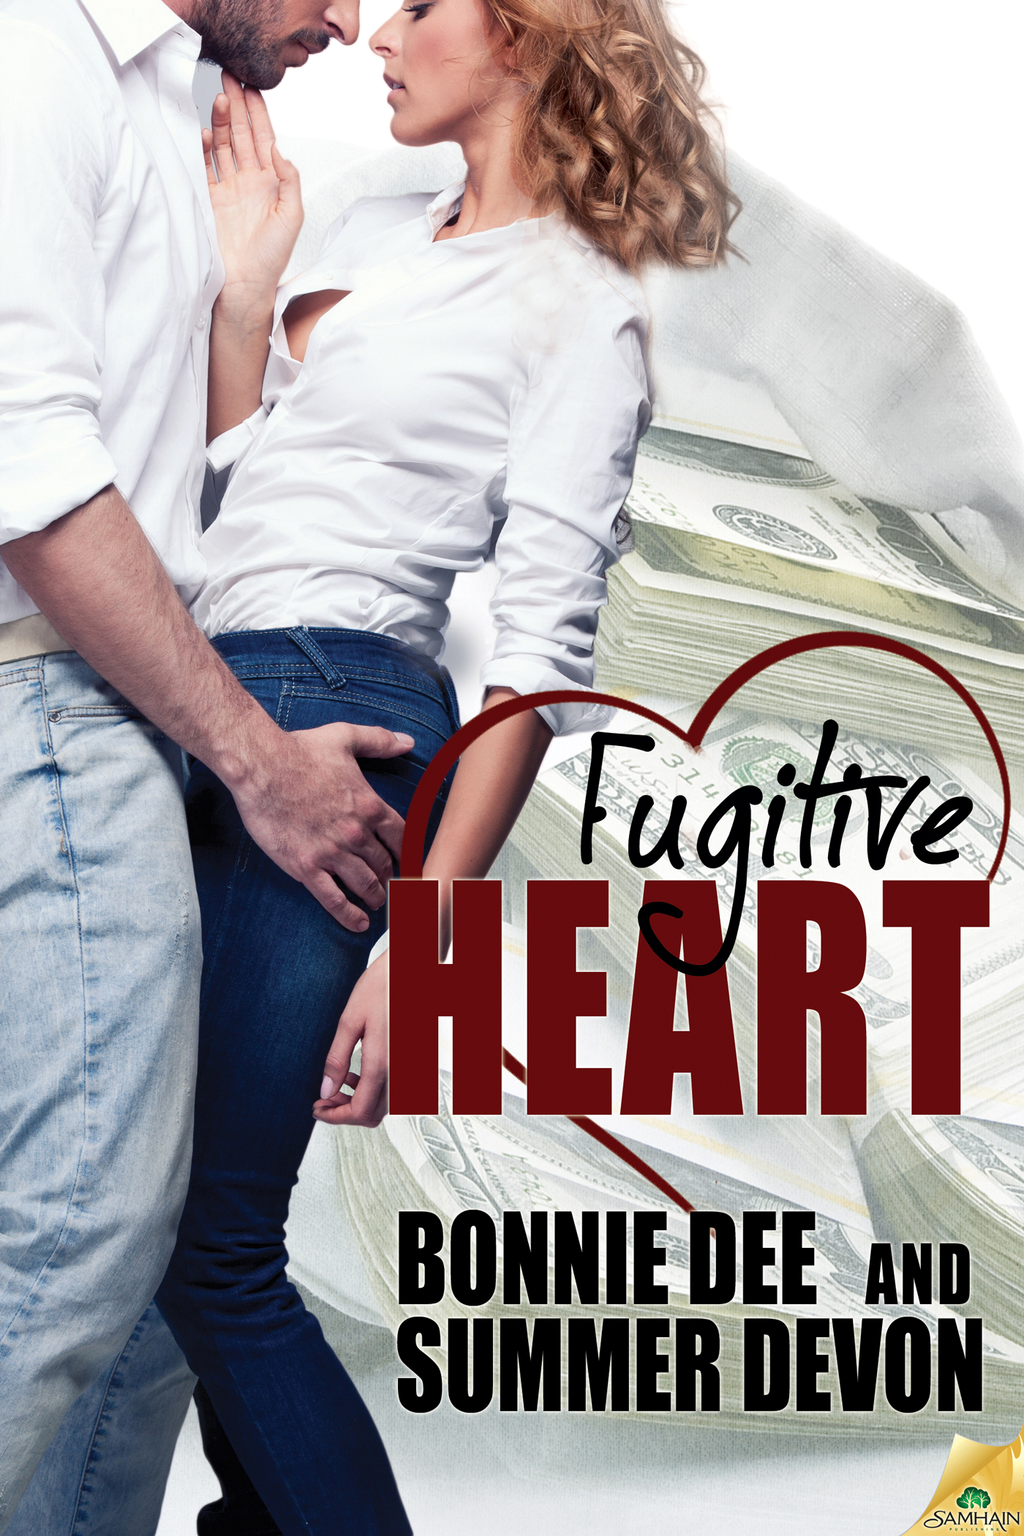 Fugitive Heart